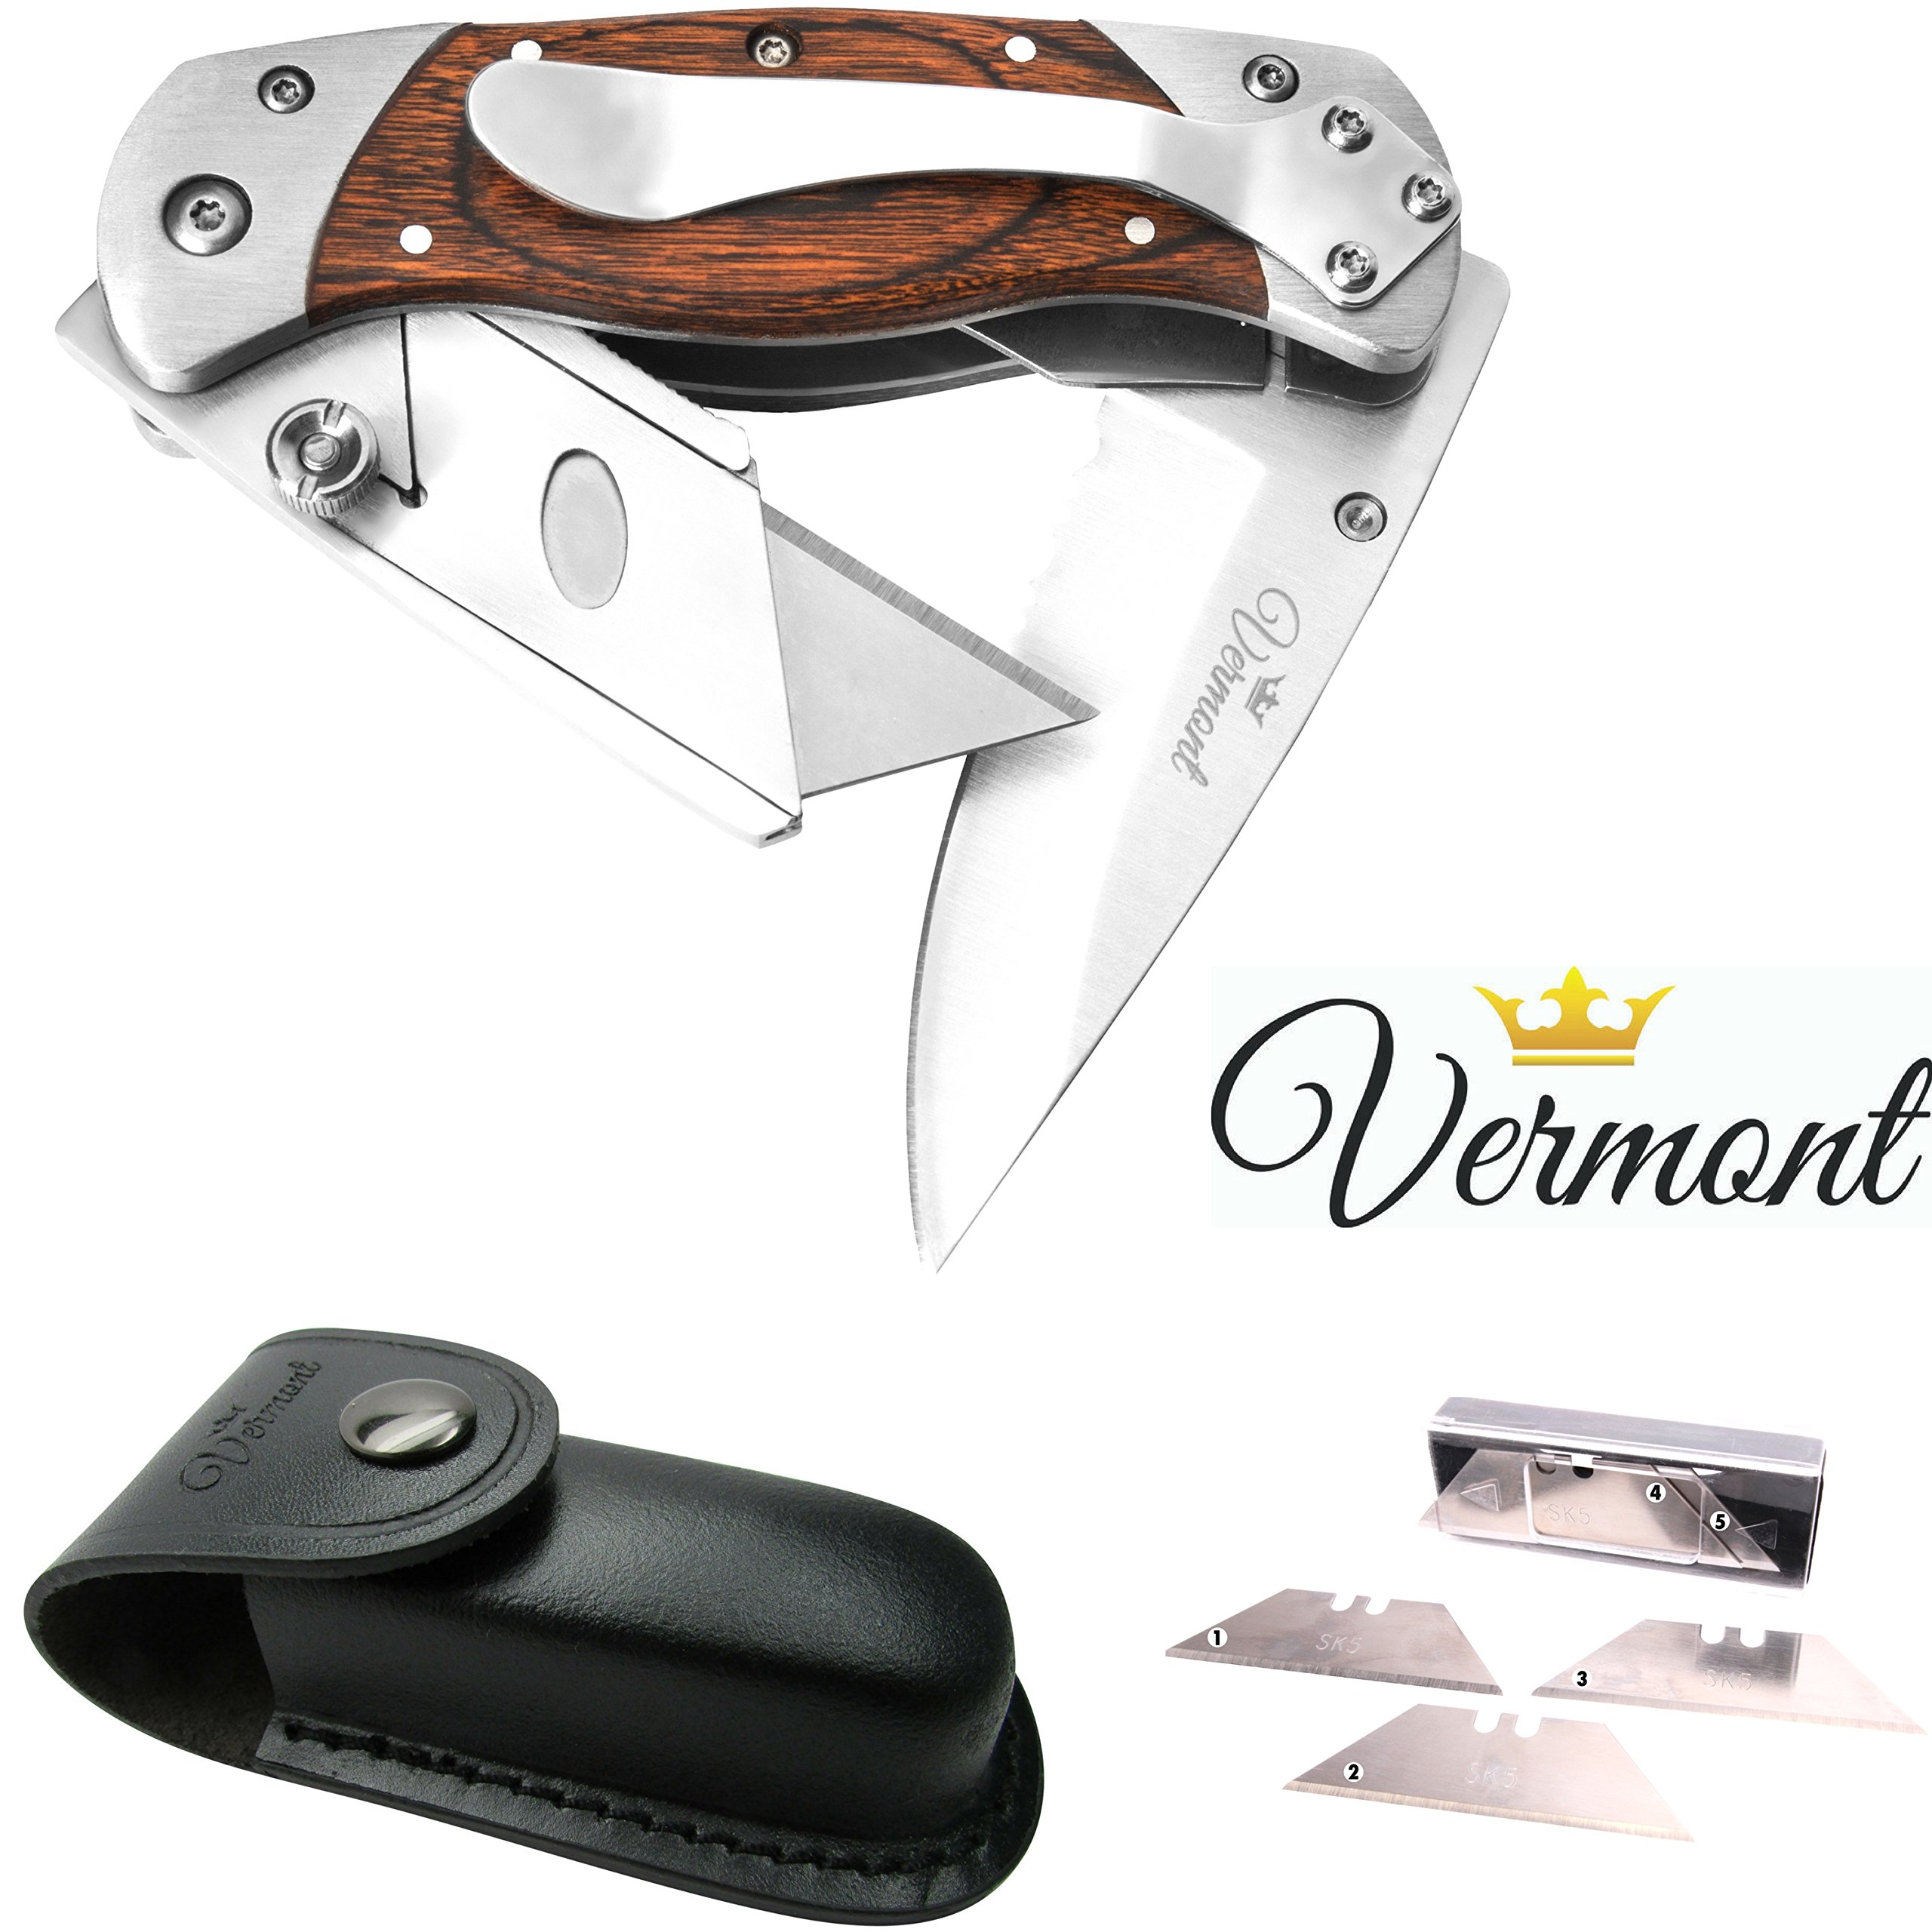 Vermont Best Folding Utility Knife 2 in1 - Handy Box Cutter with Heavy-Duty Belt Clip. Includes Leather Sheath and Razor Blades with Dispenser 5-Pack. Great Addition to your Tool Bag.